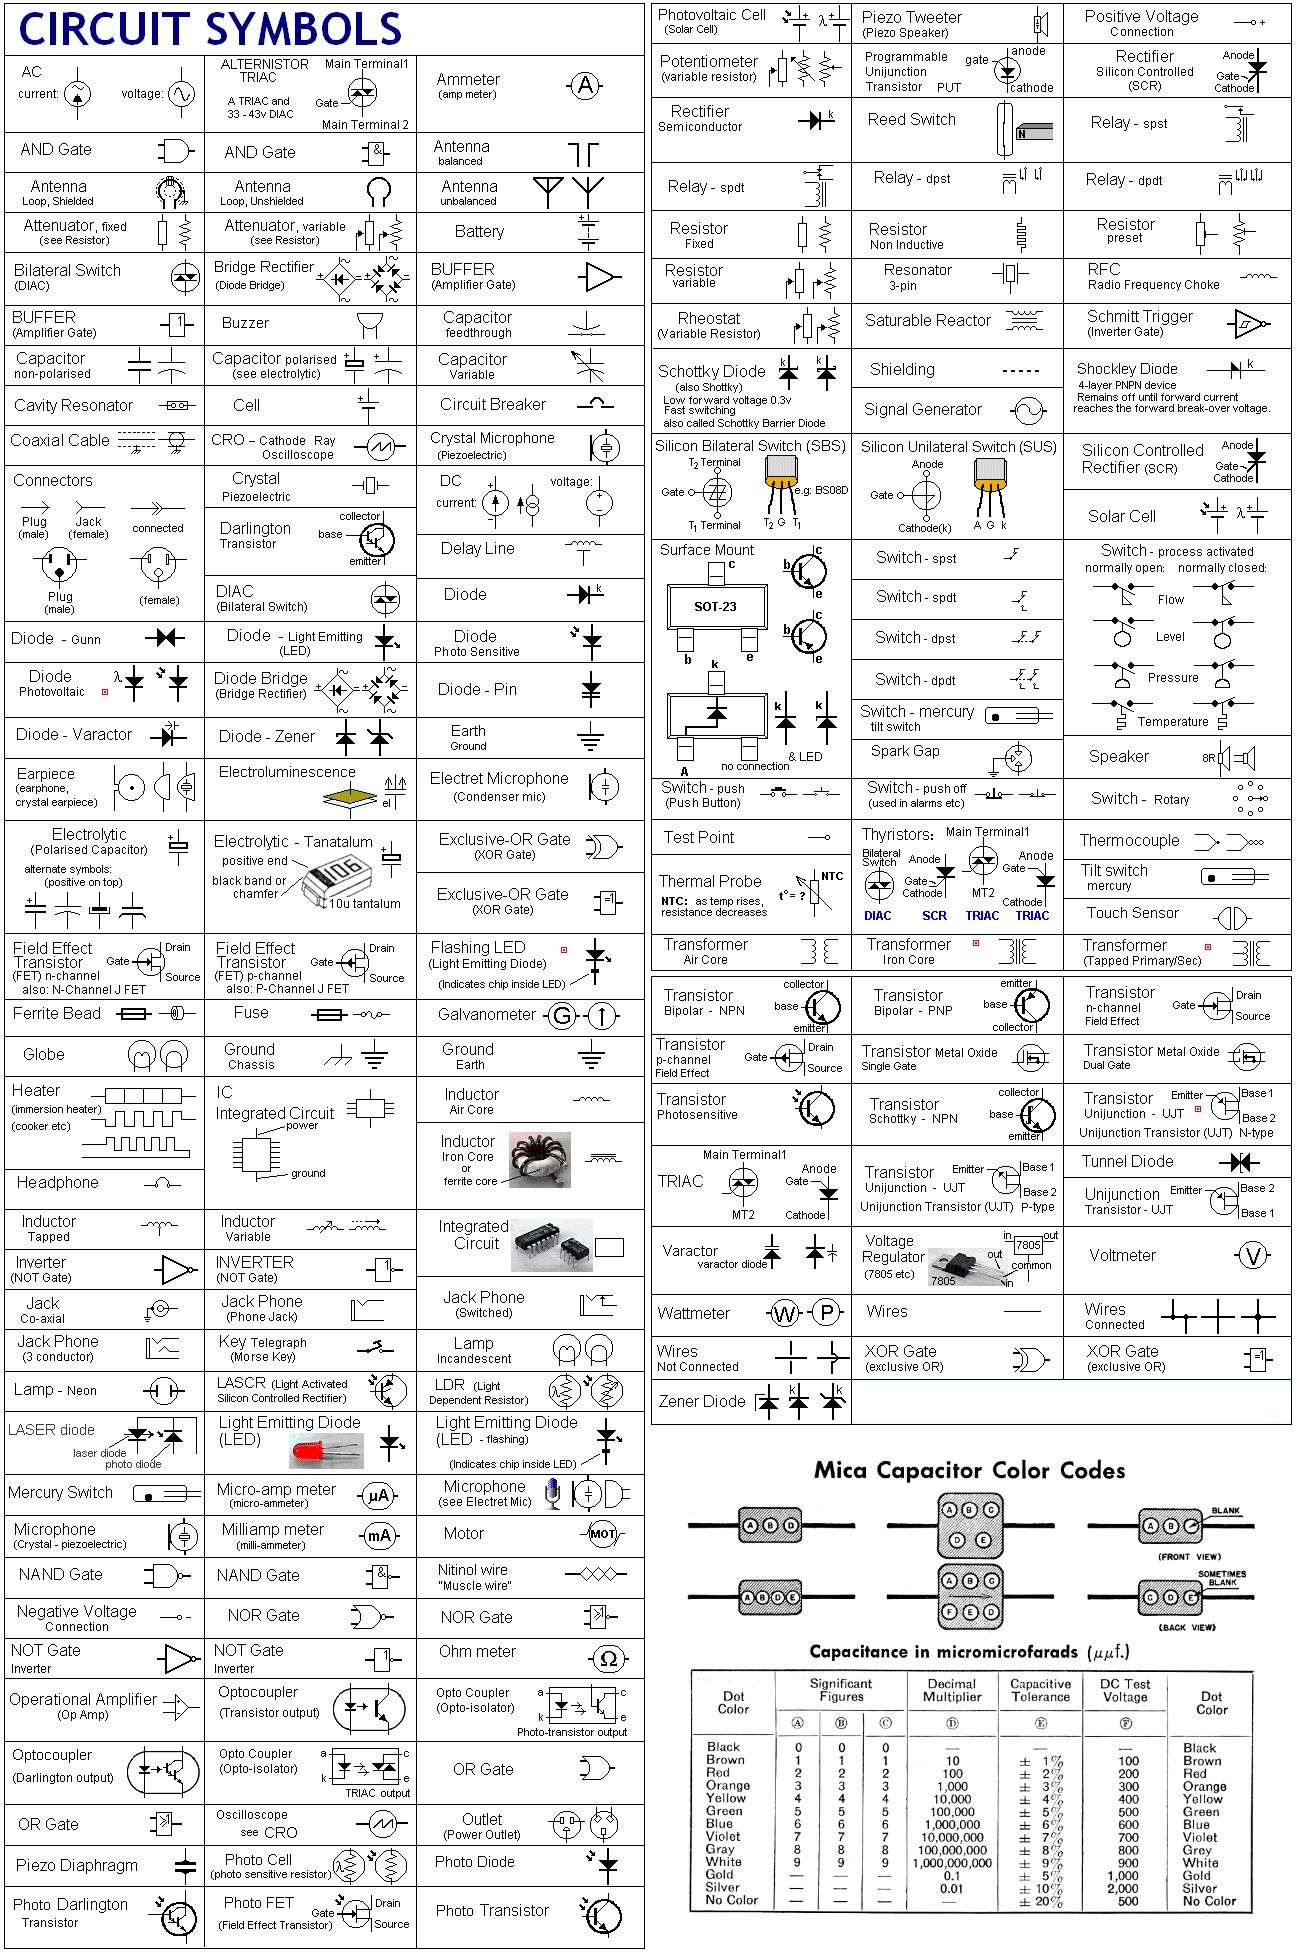 6c64fb84c8e162b28334051891c290f4 schematic symbols chart electric circuit symbols a considerably wiring diagram symbols at mr168.co